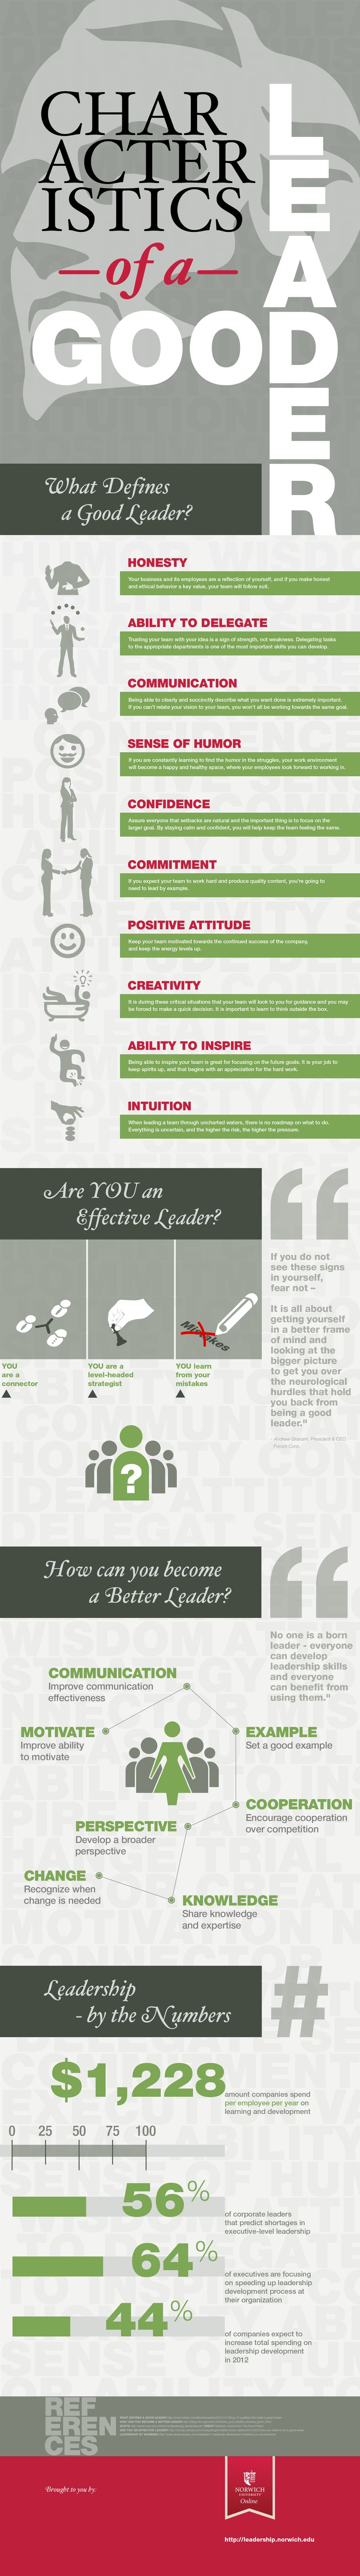 ideas about leadership characteristics characteristics of a good leader infographic business leader